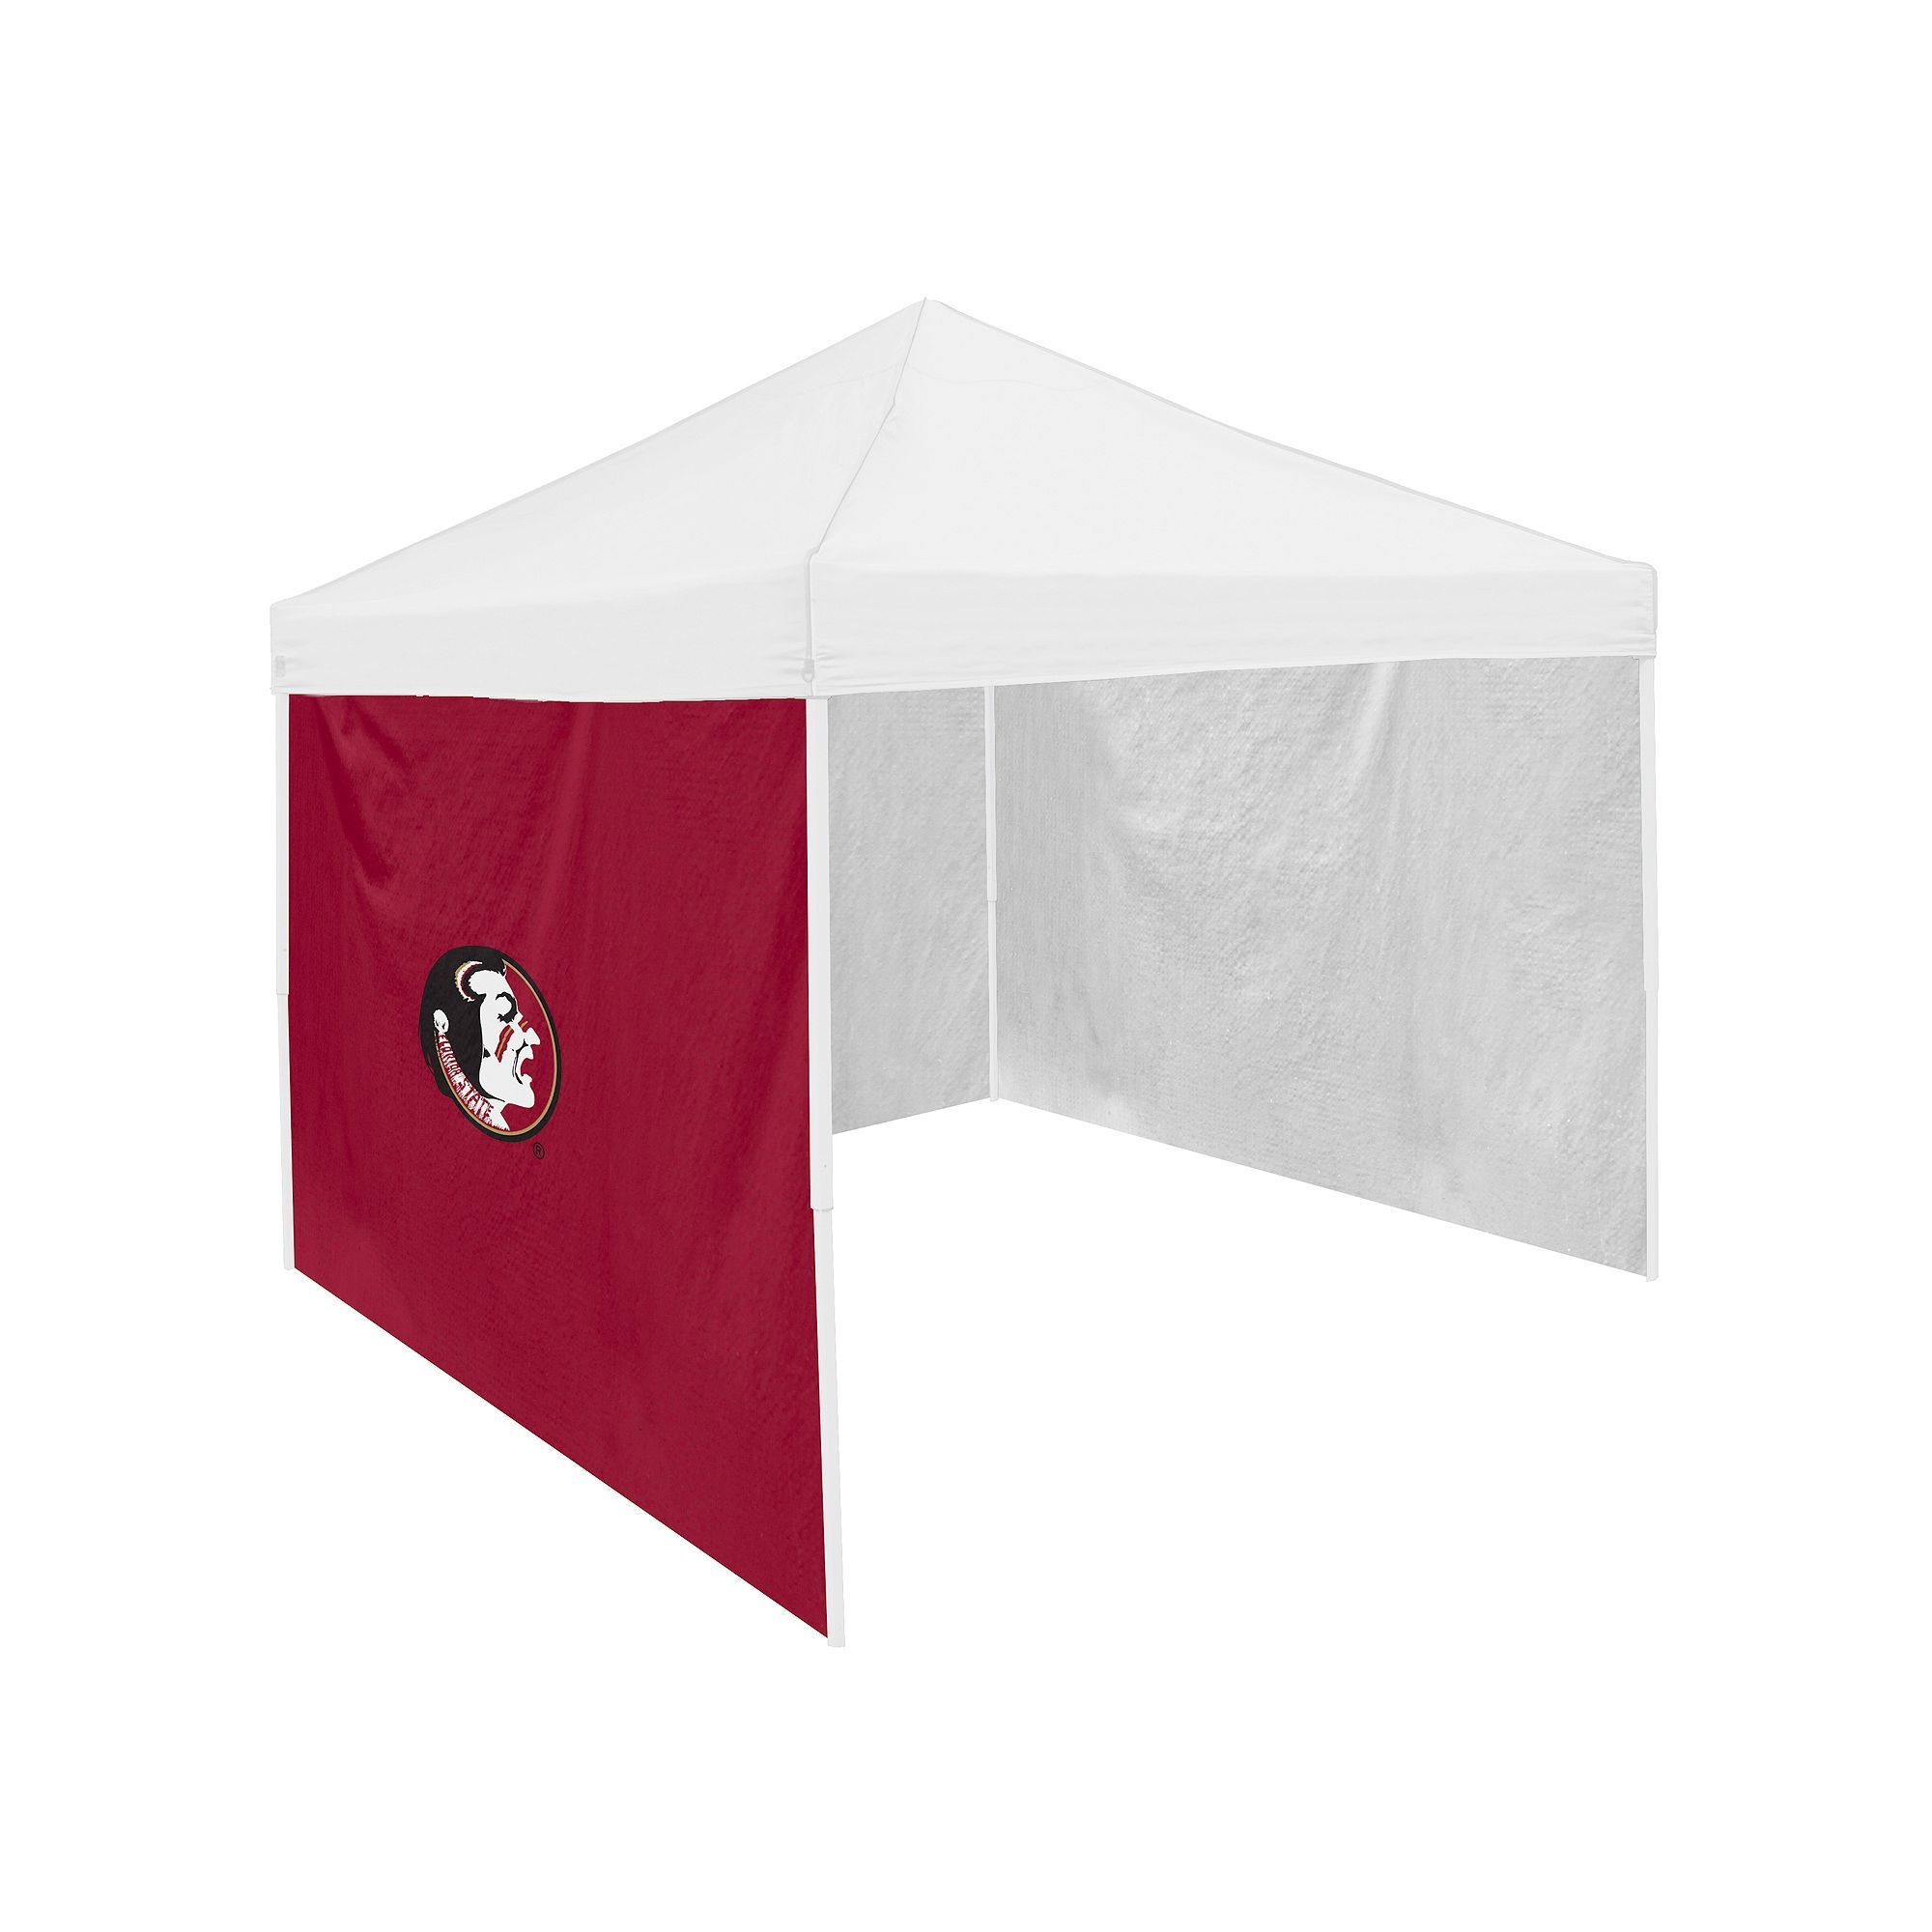 Logo Brand Florida State Seminoles Tent Side Panels Multicolor  sc 1 st  Pinterest & Logo Brand Florida State Seminoles Tent Side Panels Multicolor ...